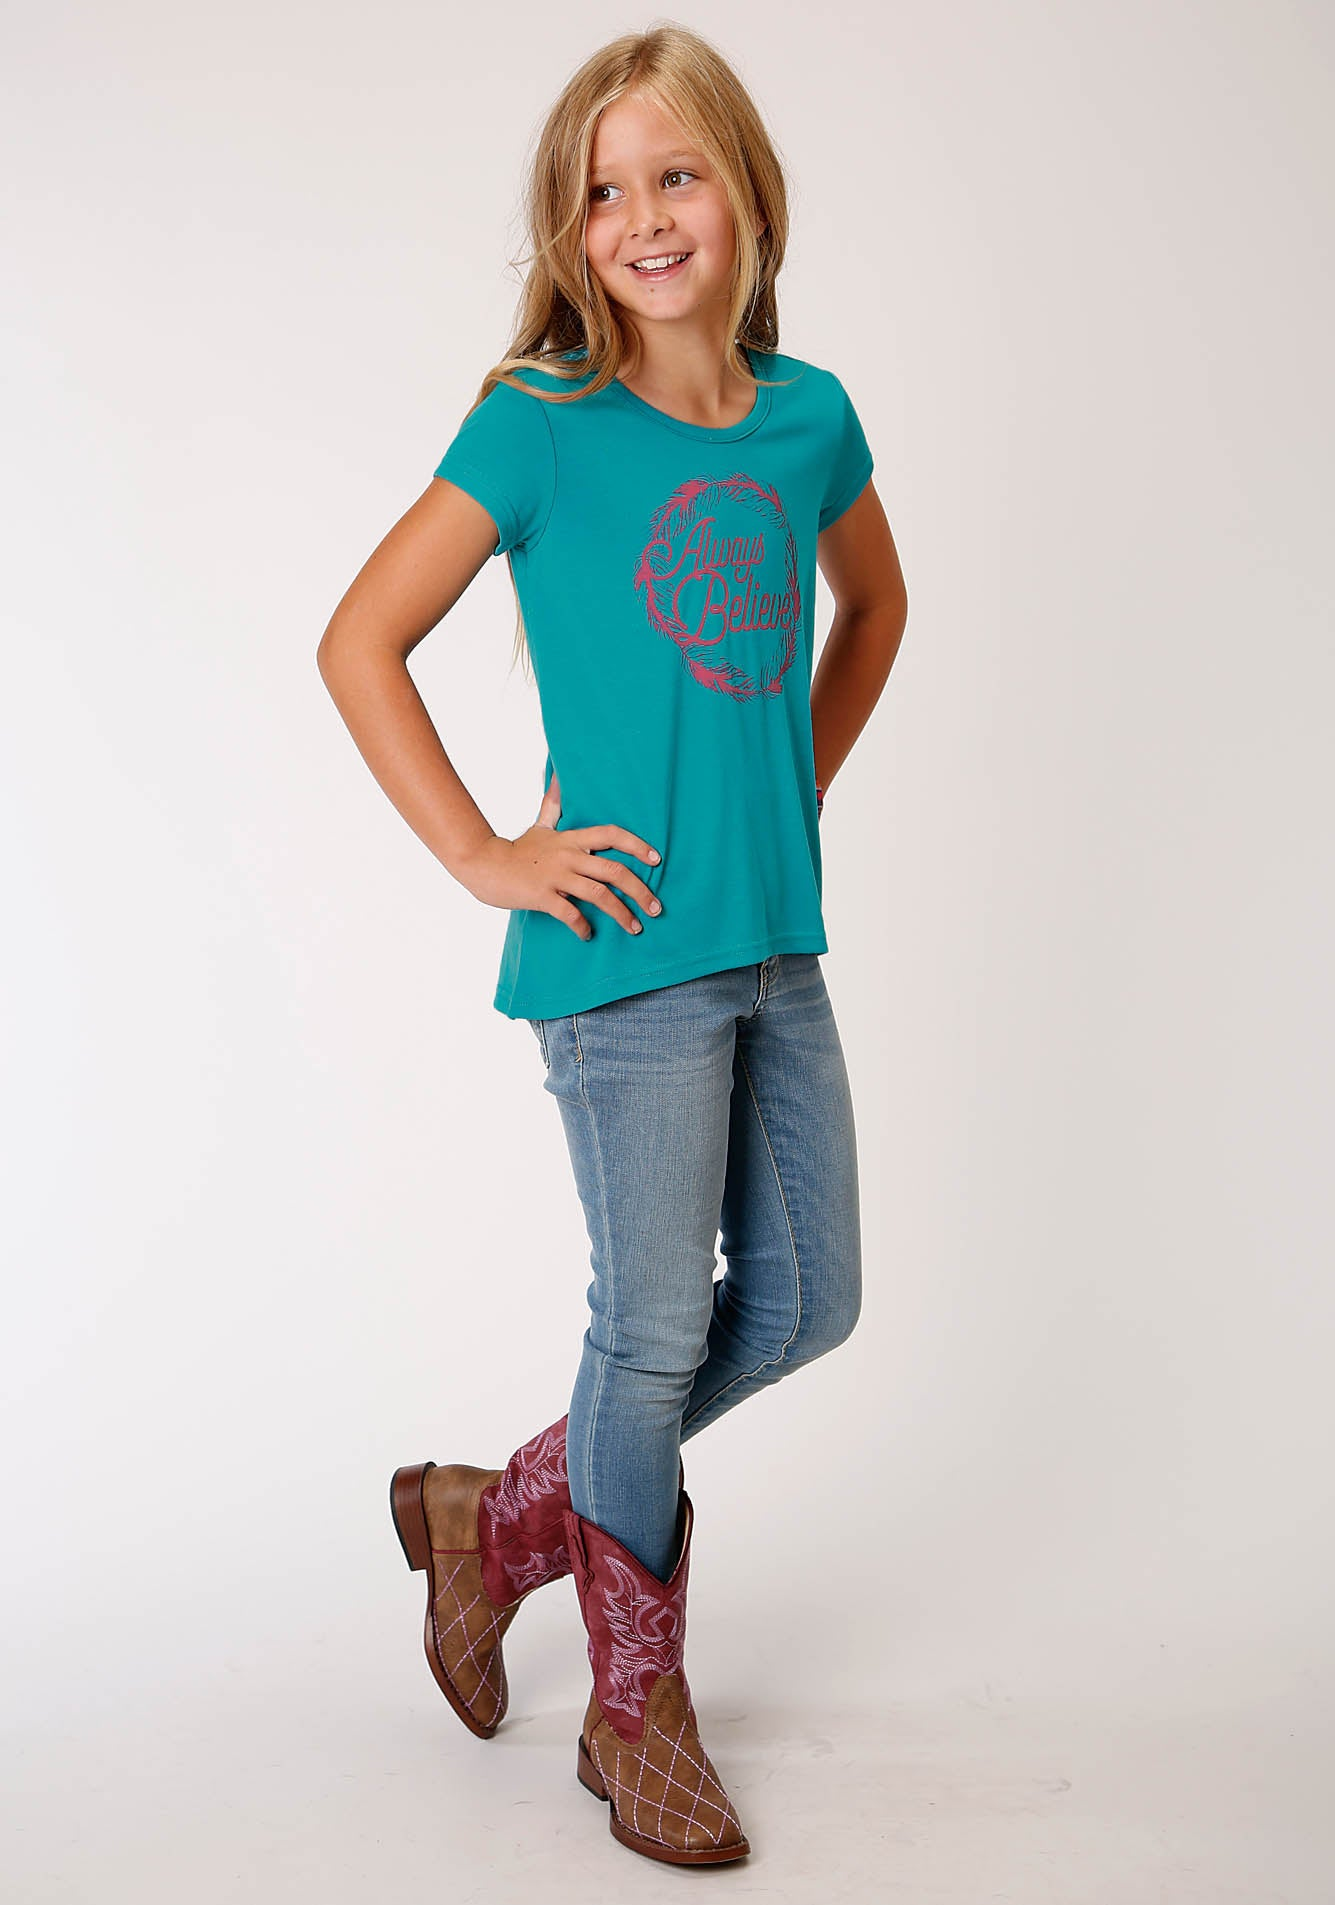 ROPER GIRLS BLUE 00244 POLY RAYON SWING TEE W/V BACK FIVE STAR GIRL'S SHORT SLEEVE